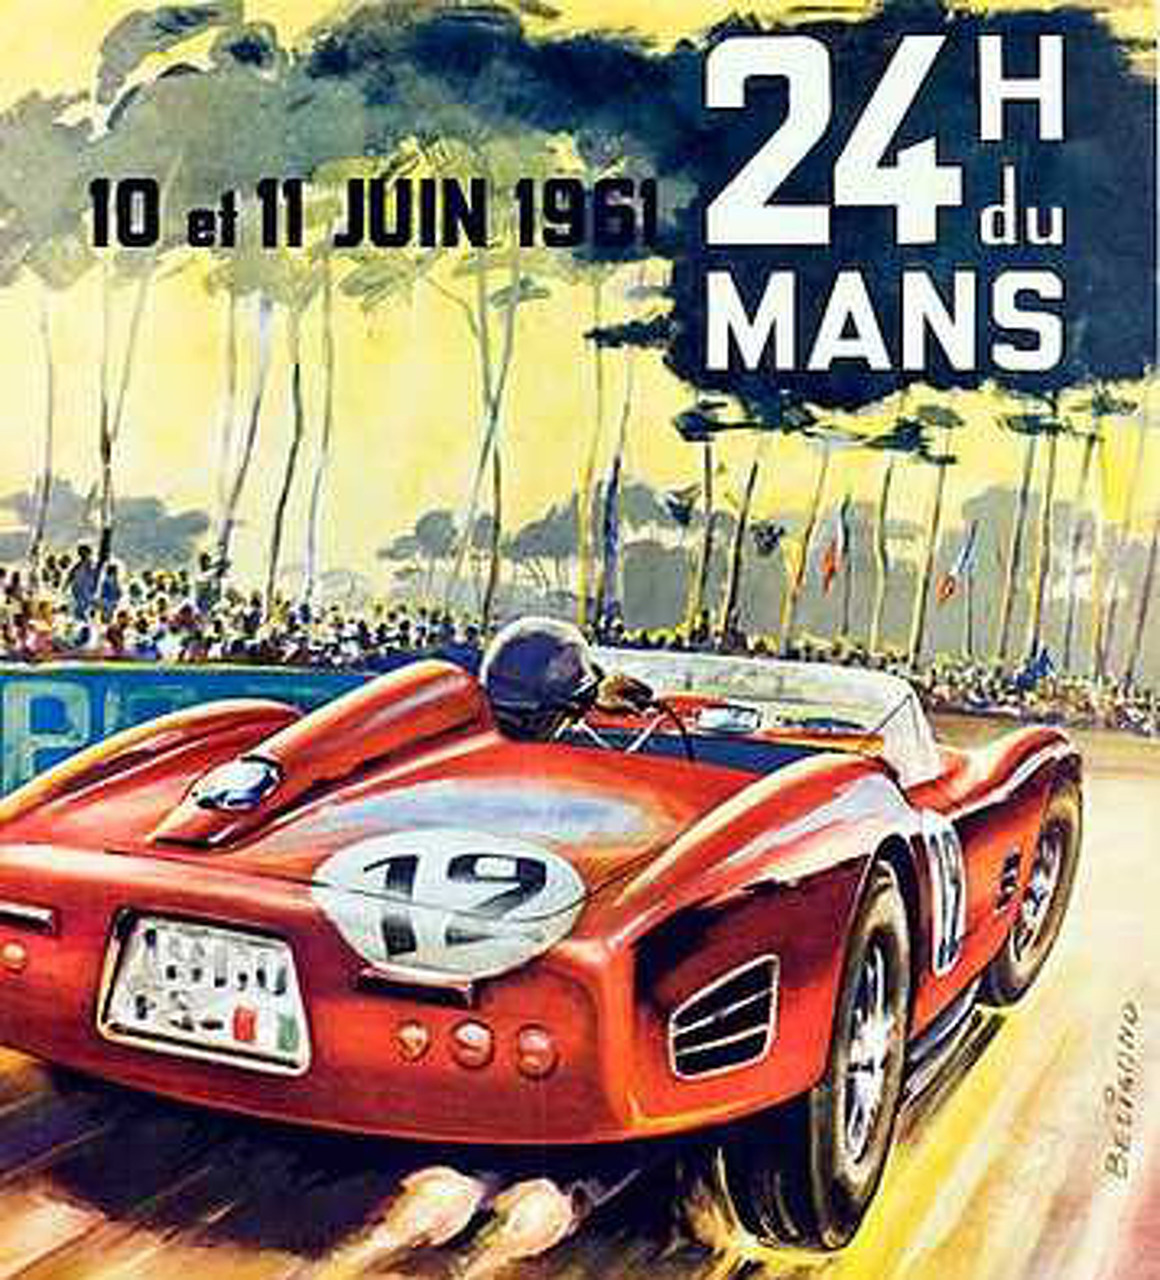 2013 Sebring Art Looks Much Better than Modern F1 Art